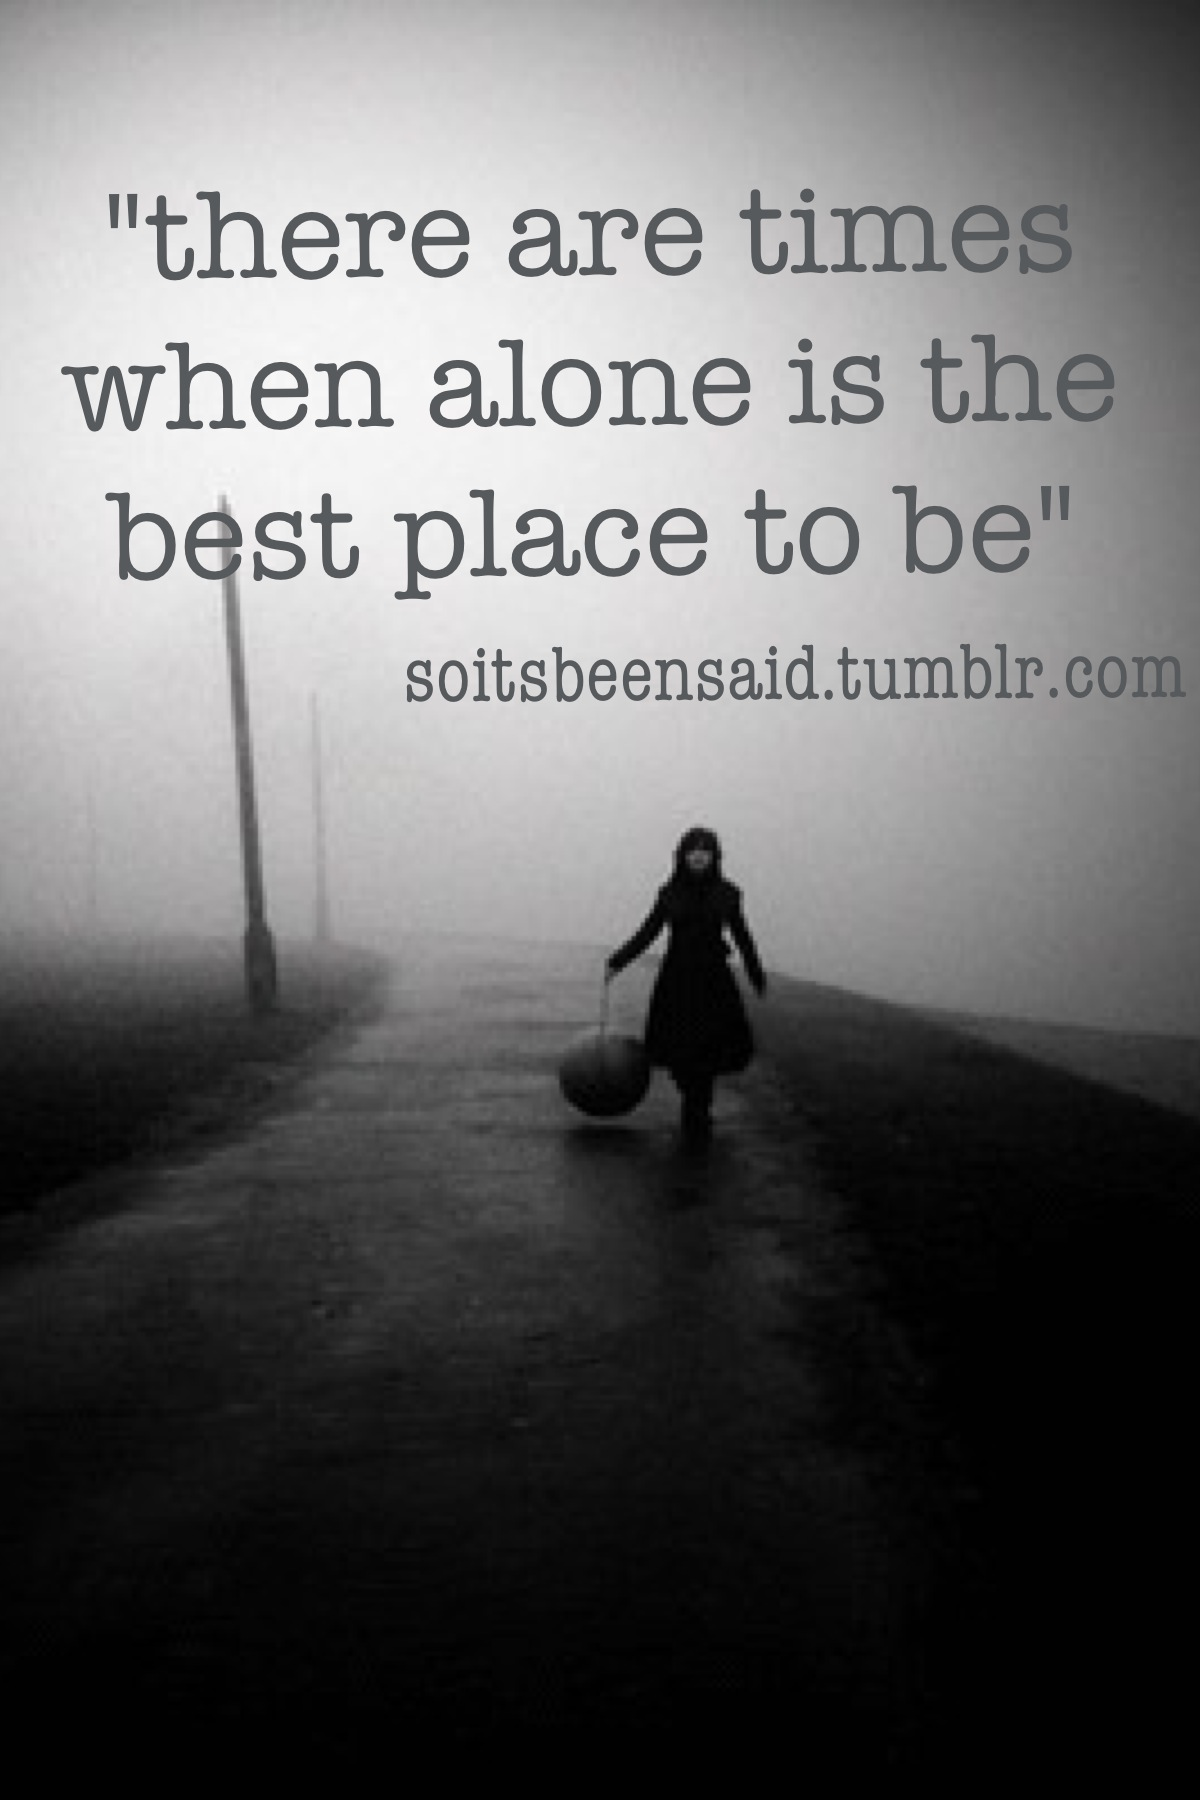 78 Best images about ALONE on Pinterest | Trust in relationships